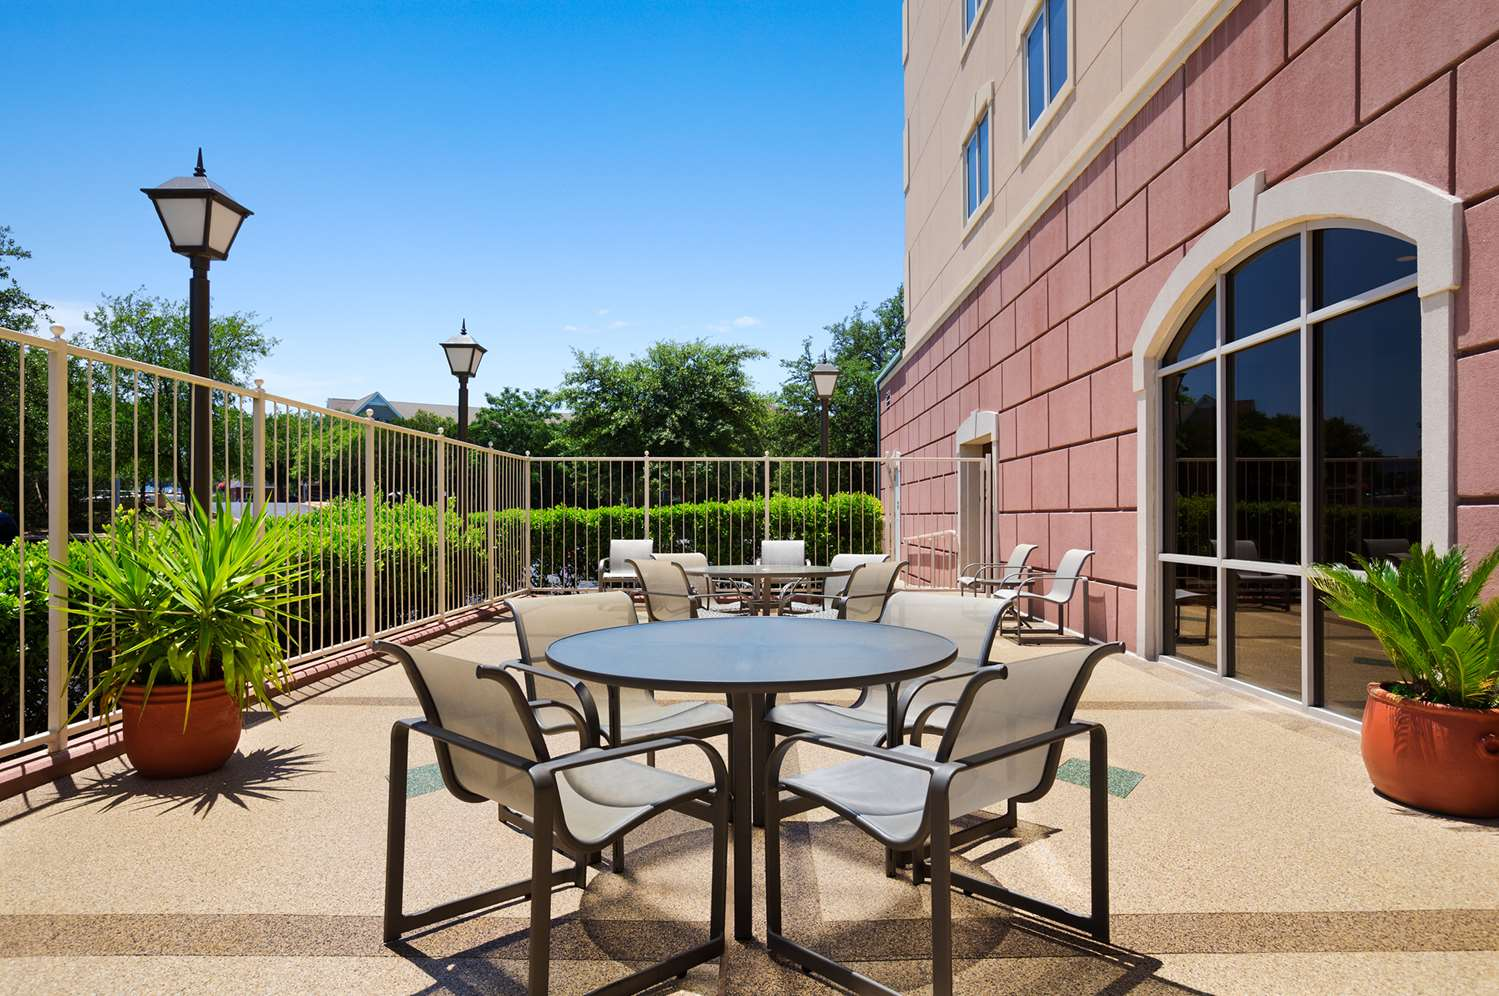 Austin Texas Studio Apartments Take a look at all of the amenities we offer in our Austin, Texas student apartments. We offer many areas where you can socialize with all of your friends.4/4().